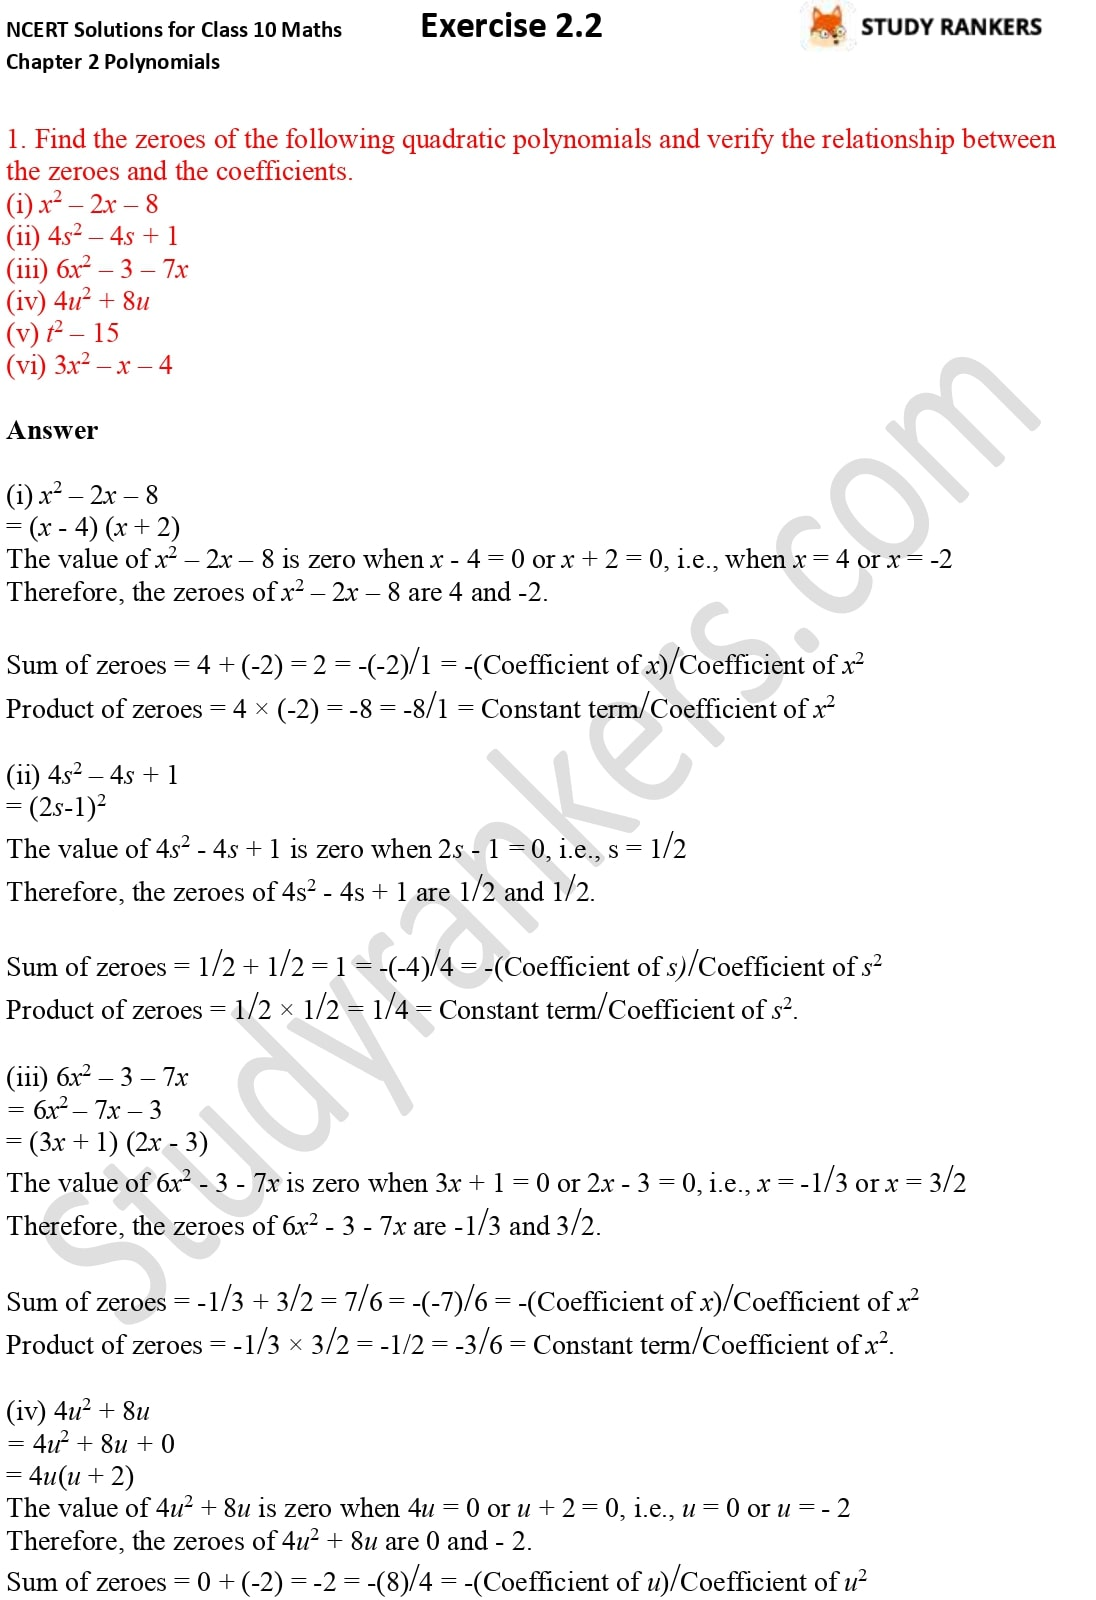 NCERT Solutions for Class 10 Maths Chapter 2 Polynomials Exercise 2.2 1